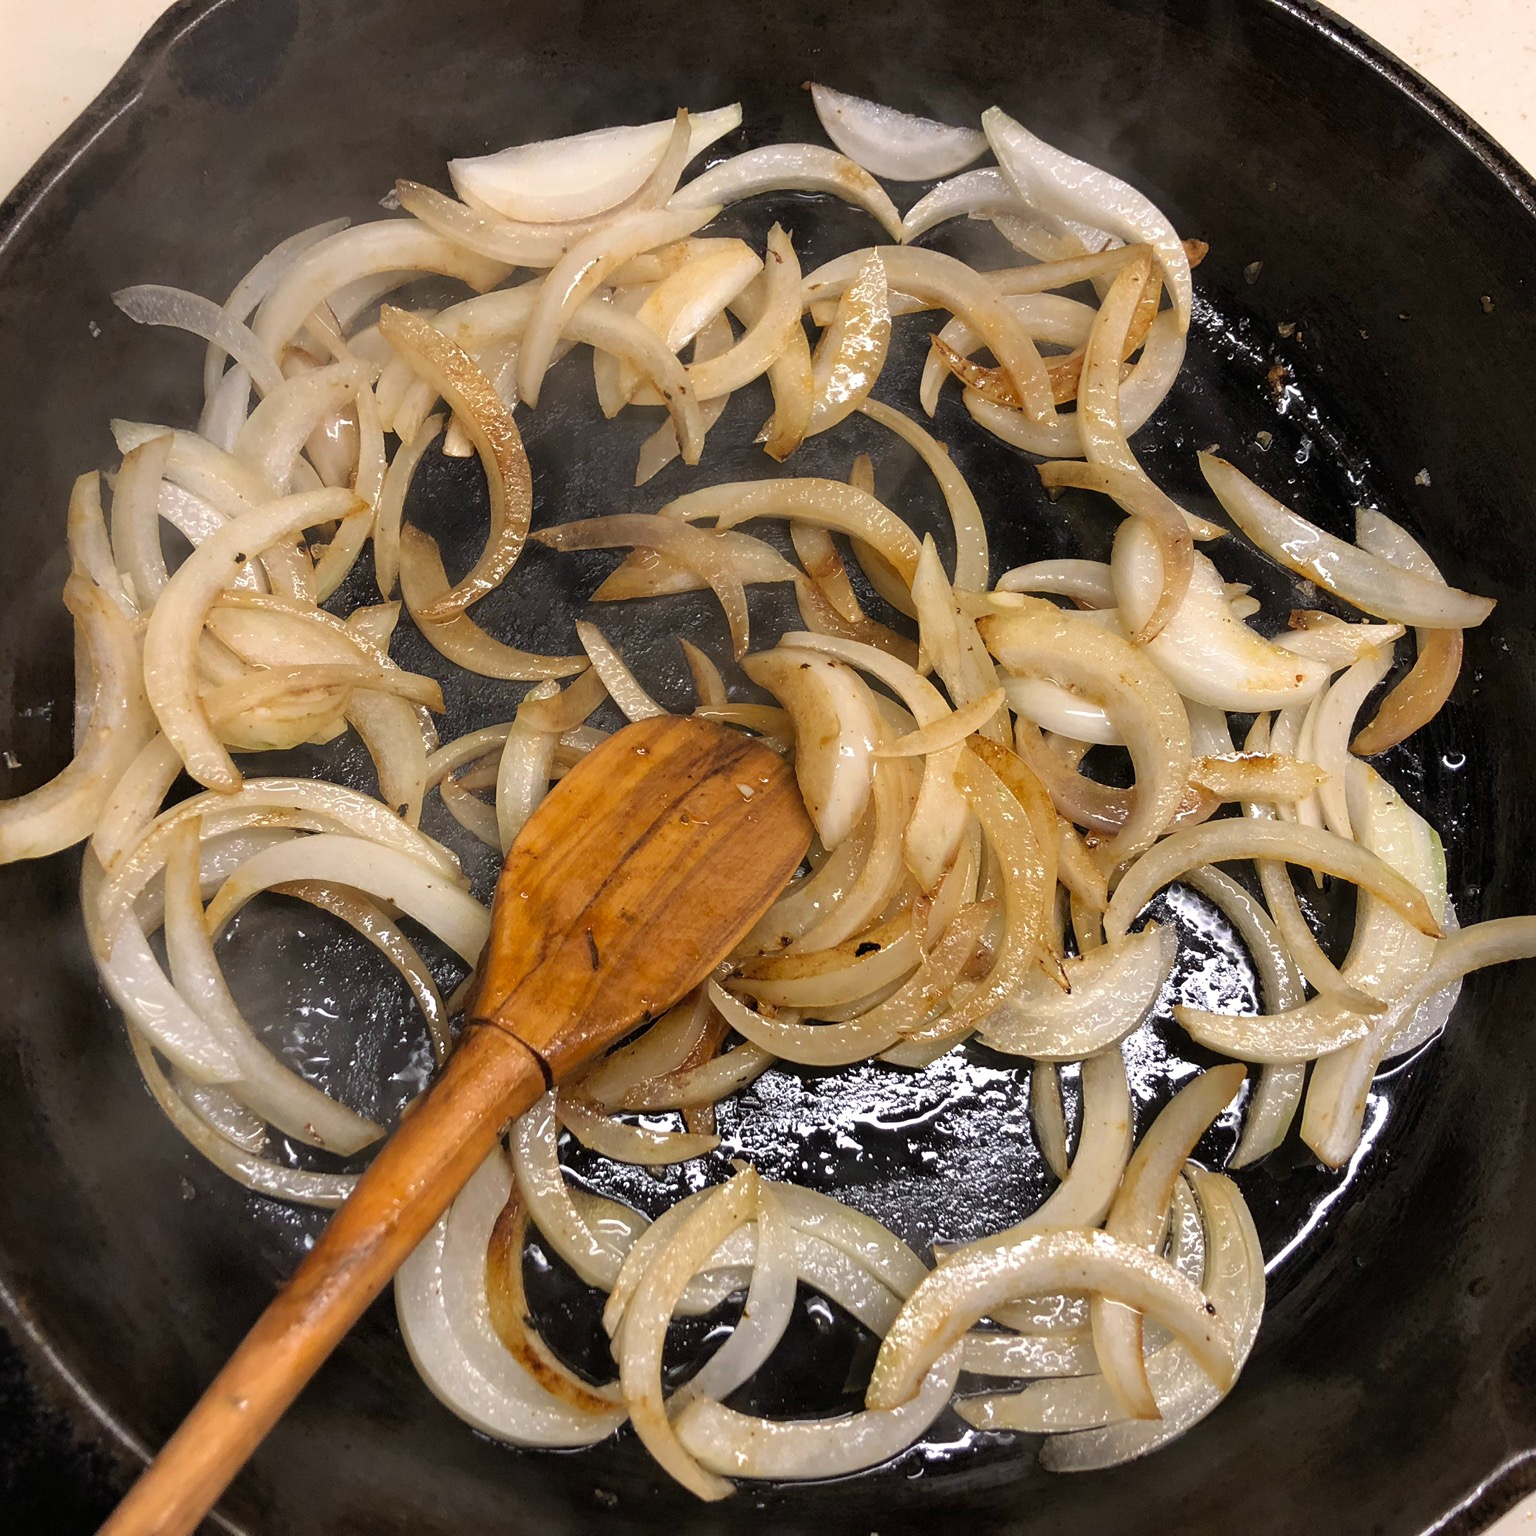 Cooking the onions